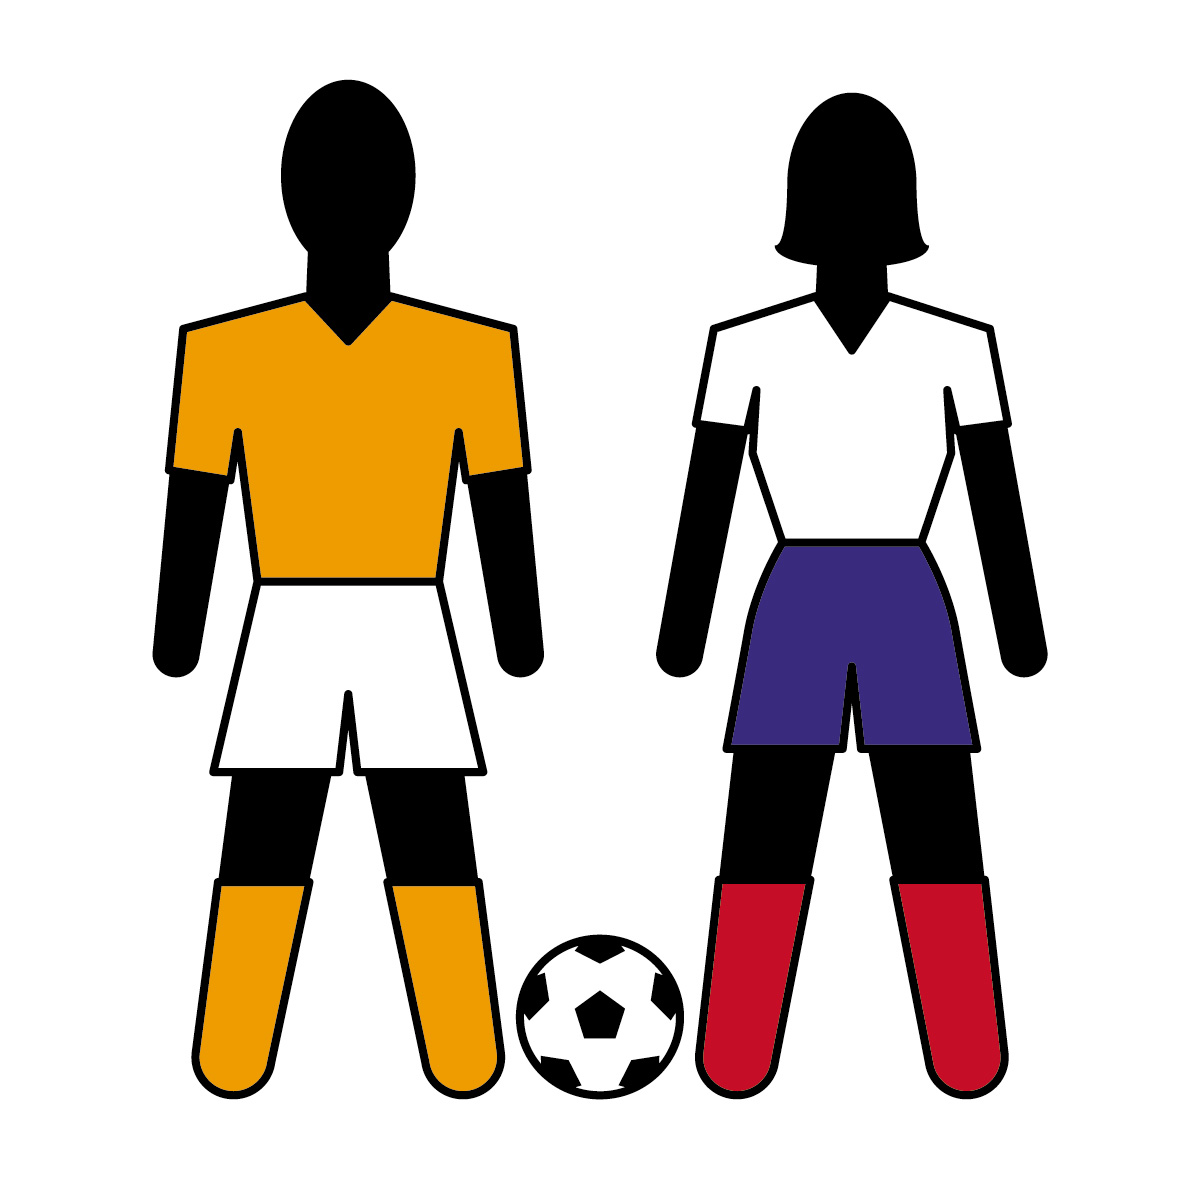 soccer player clipart at getdrawings com free for personal use rh getdrawings com free soccer clipart sharks free clipart soccer ball